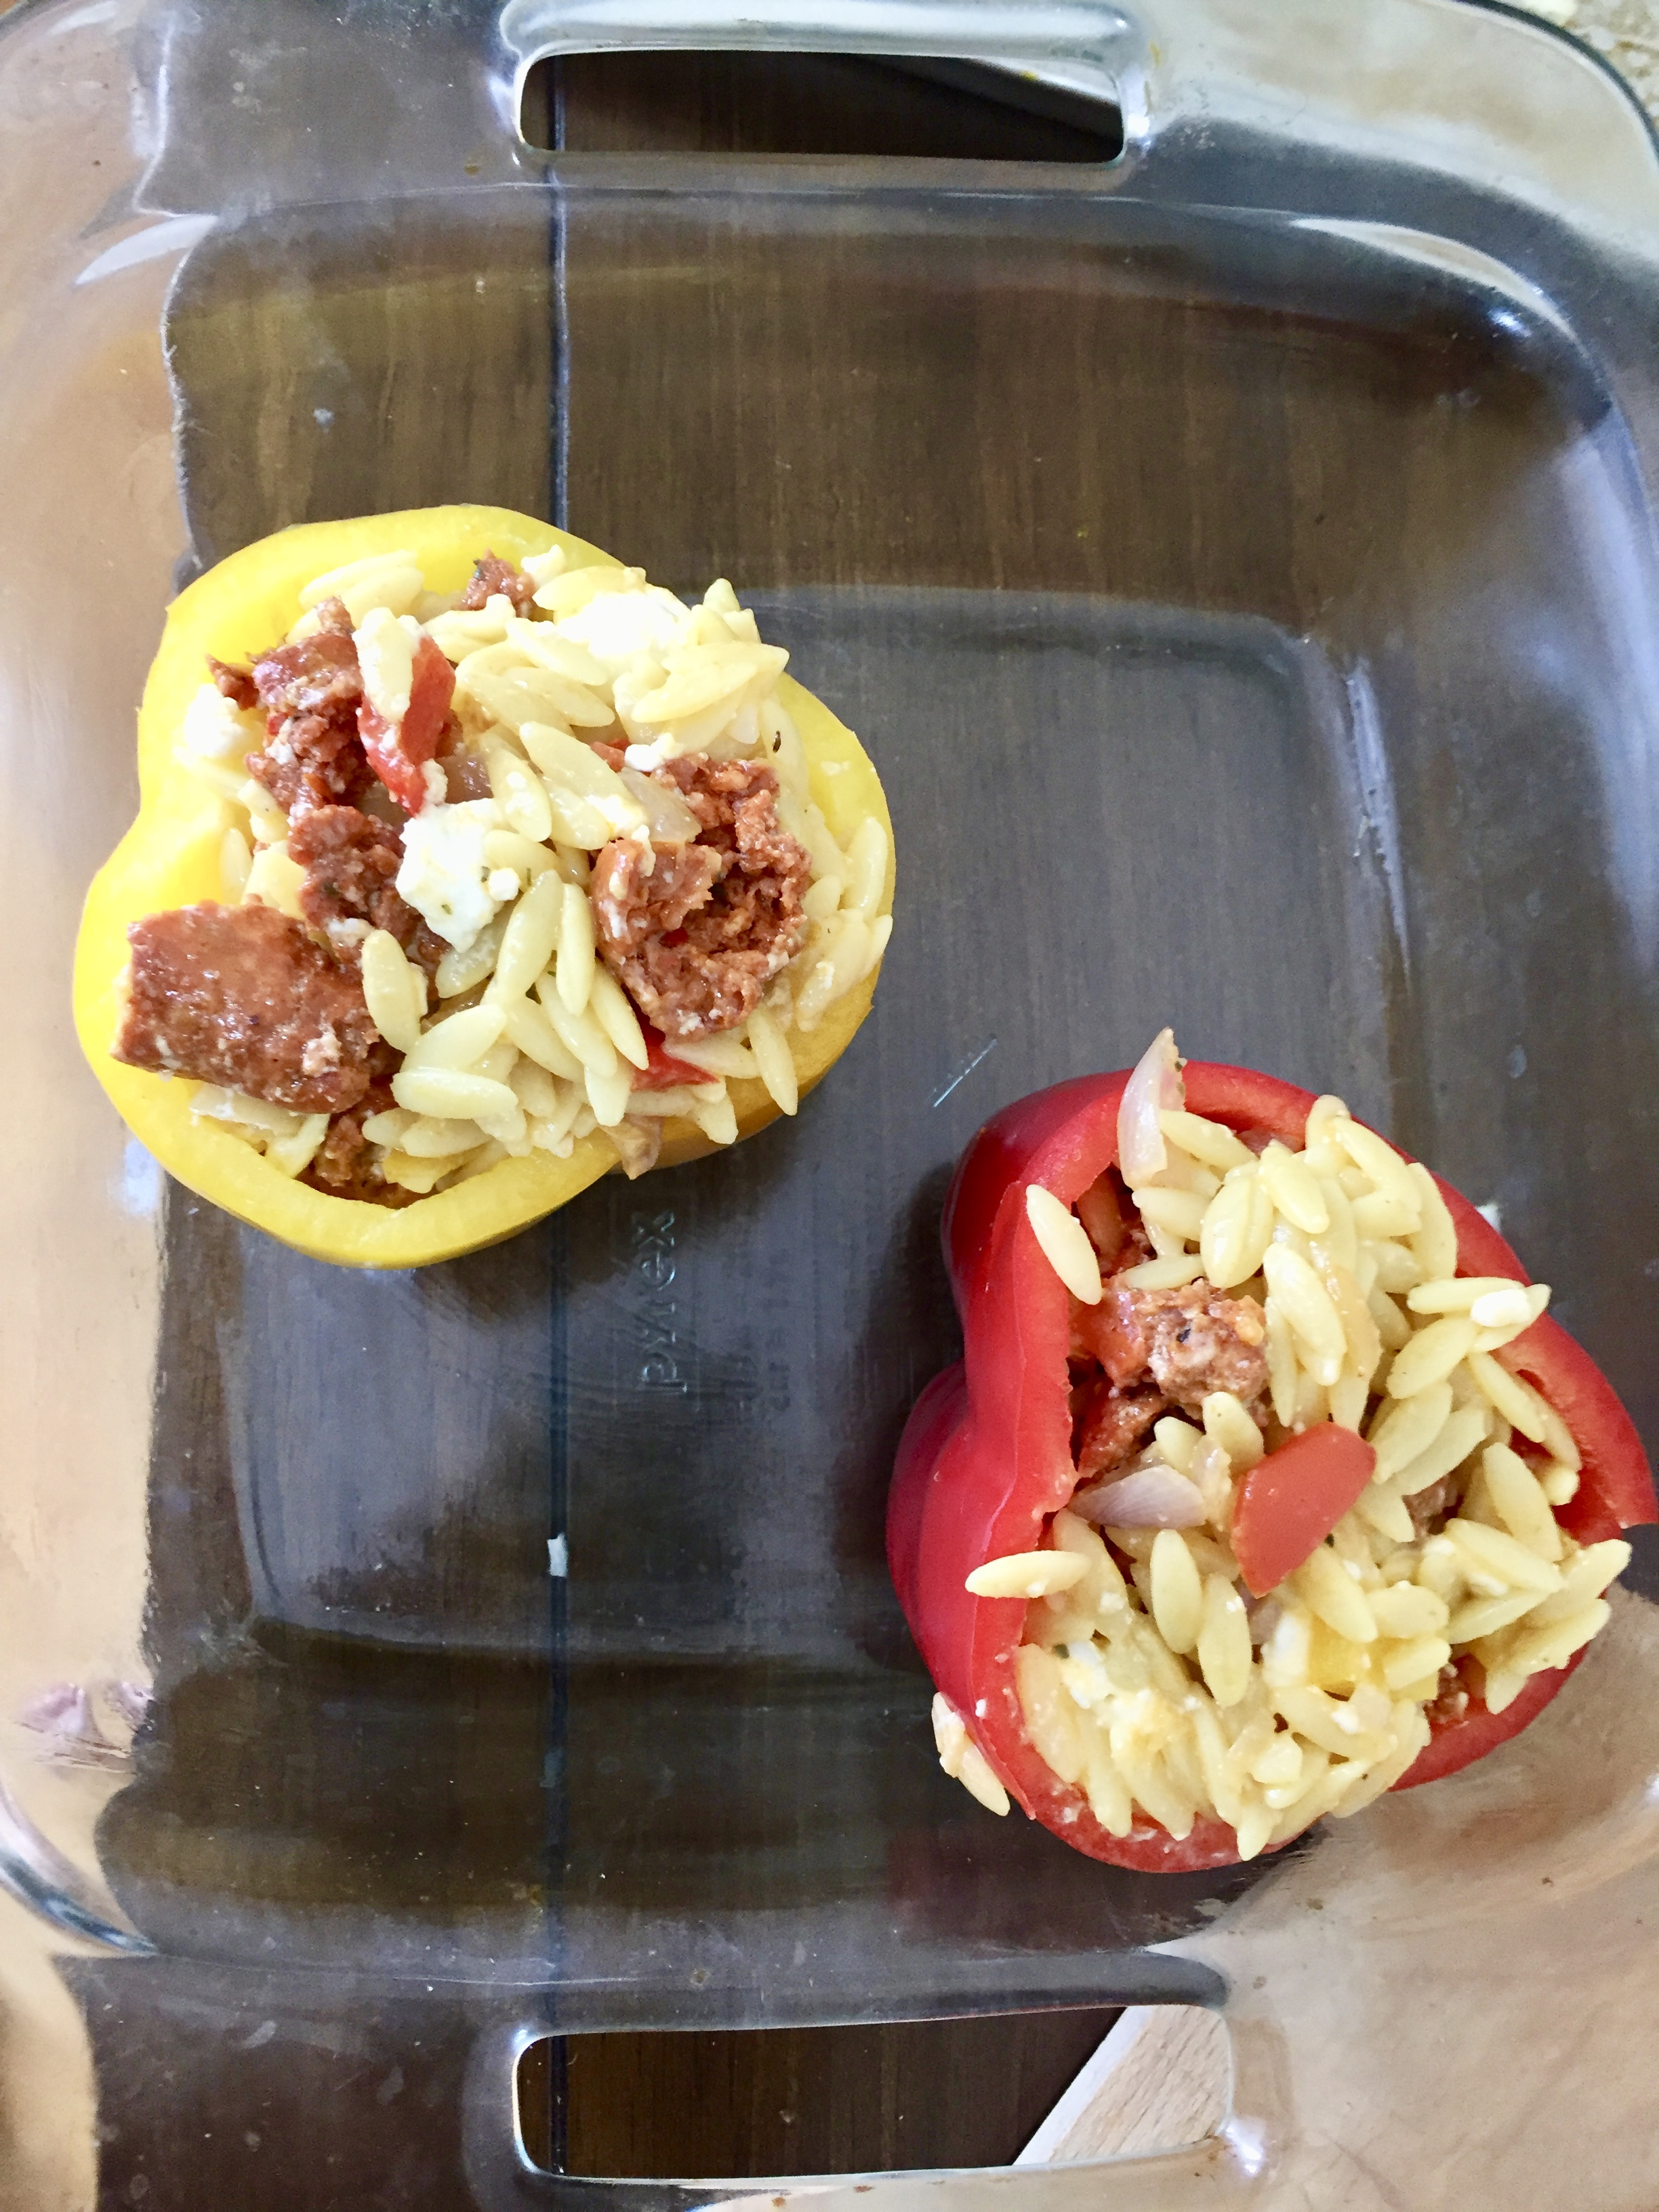 Stuff the peppers with the orzo mixture and place on an olive oiled baking dish. Put in the oven for 25 - 40 minutes (depending on your oven). Mine were in for 30 minutes and it worked perfectly.